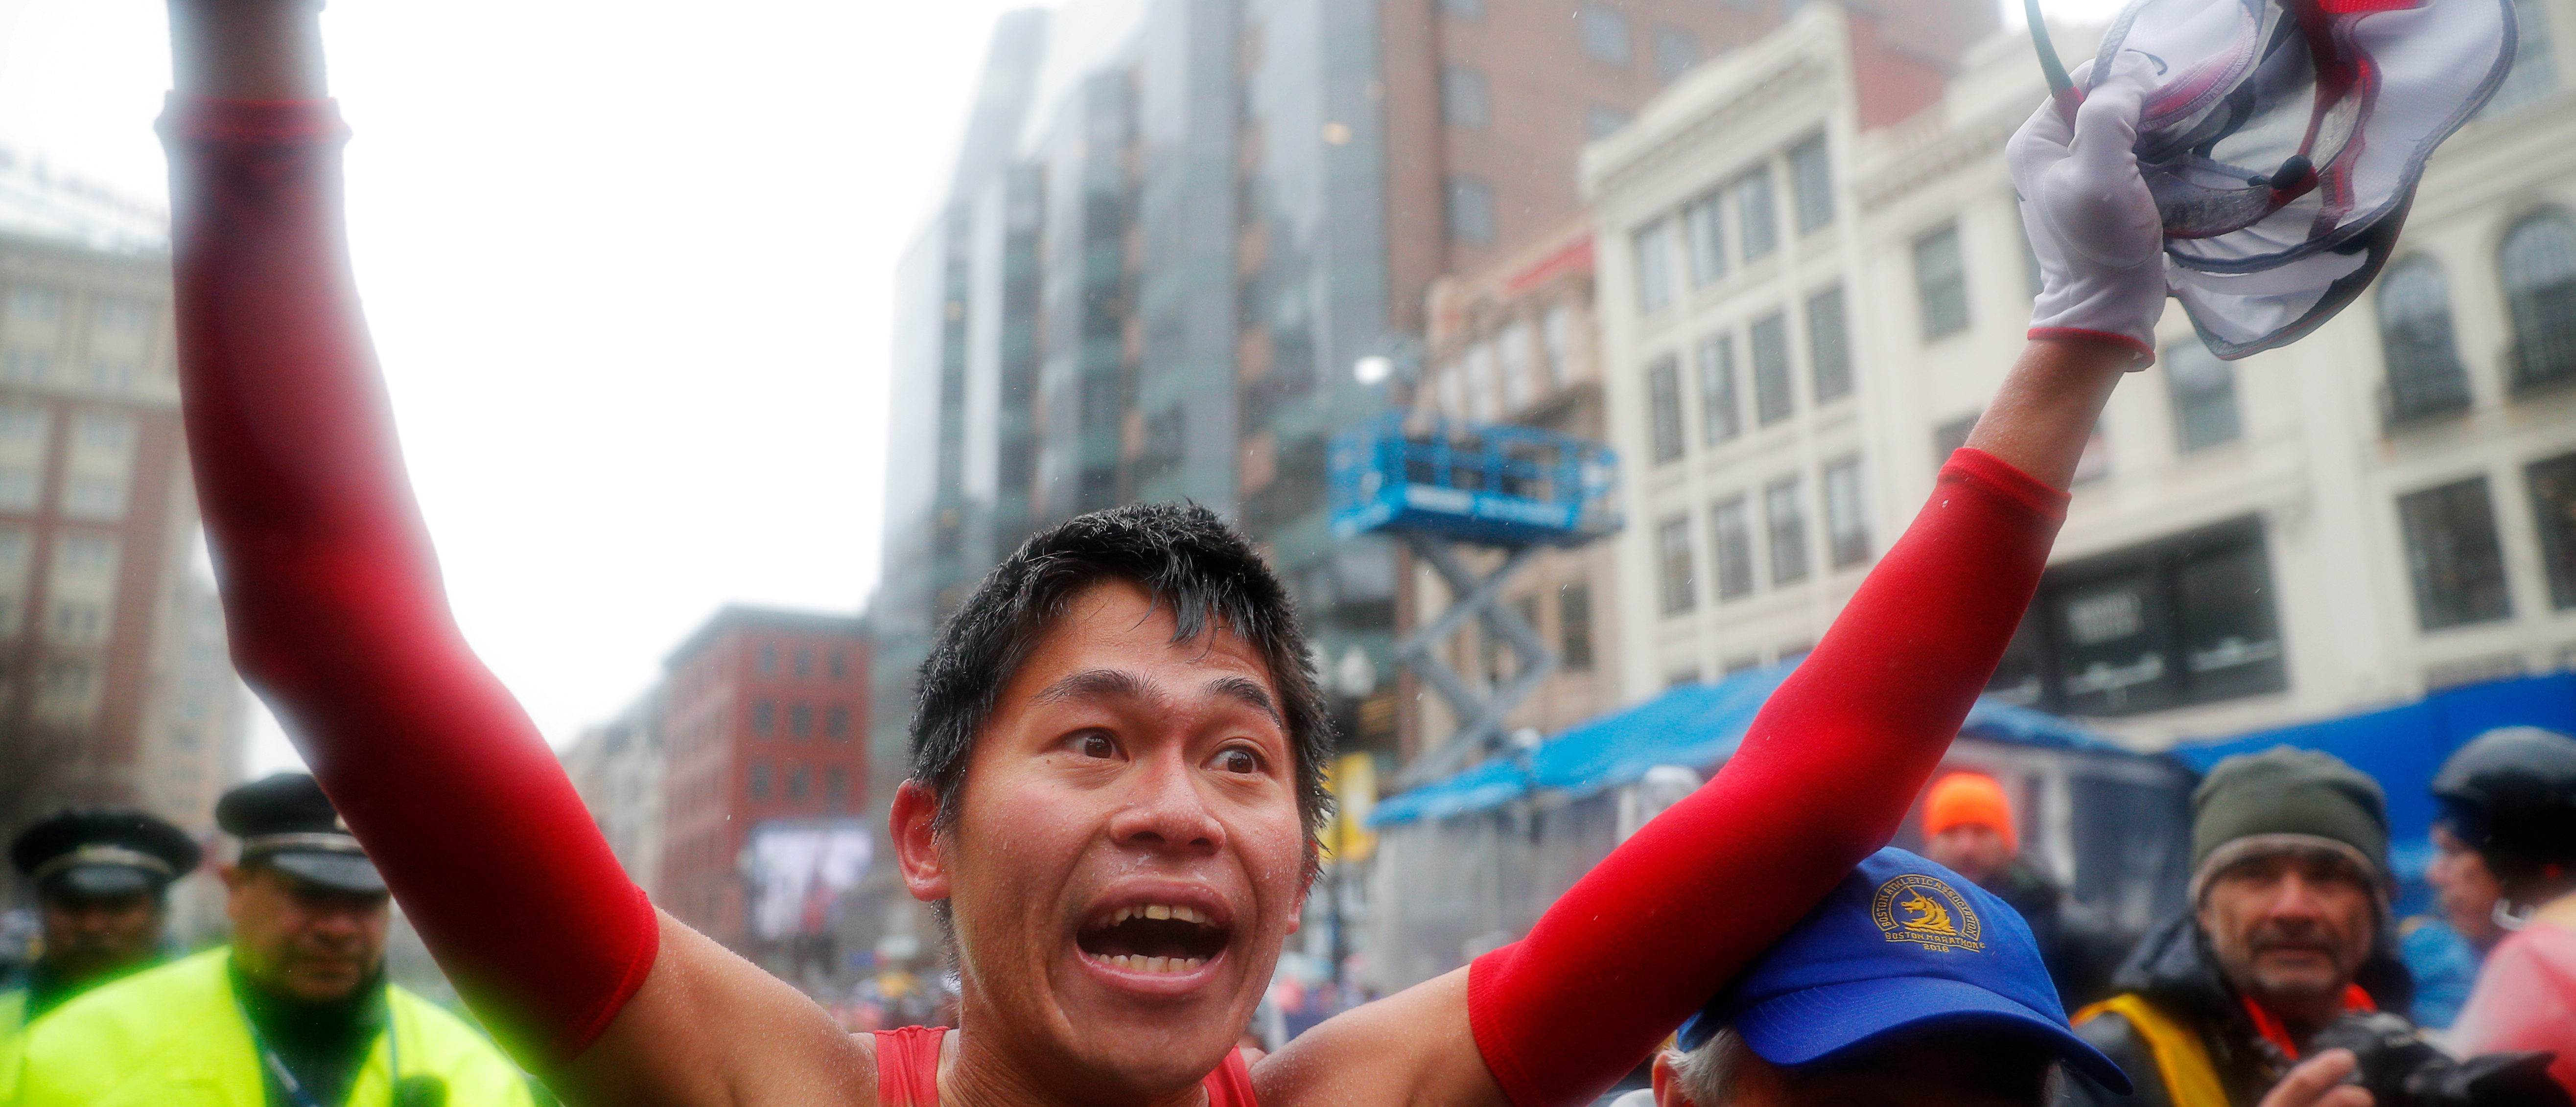 Yuki Kawauchi of Japan celebrates after winning the men's division of the 122nd Boston Marathon April 16, 2018. REUTERS/Brian Snyder